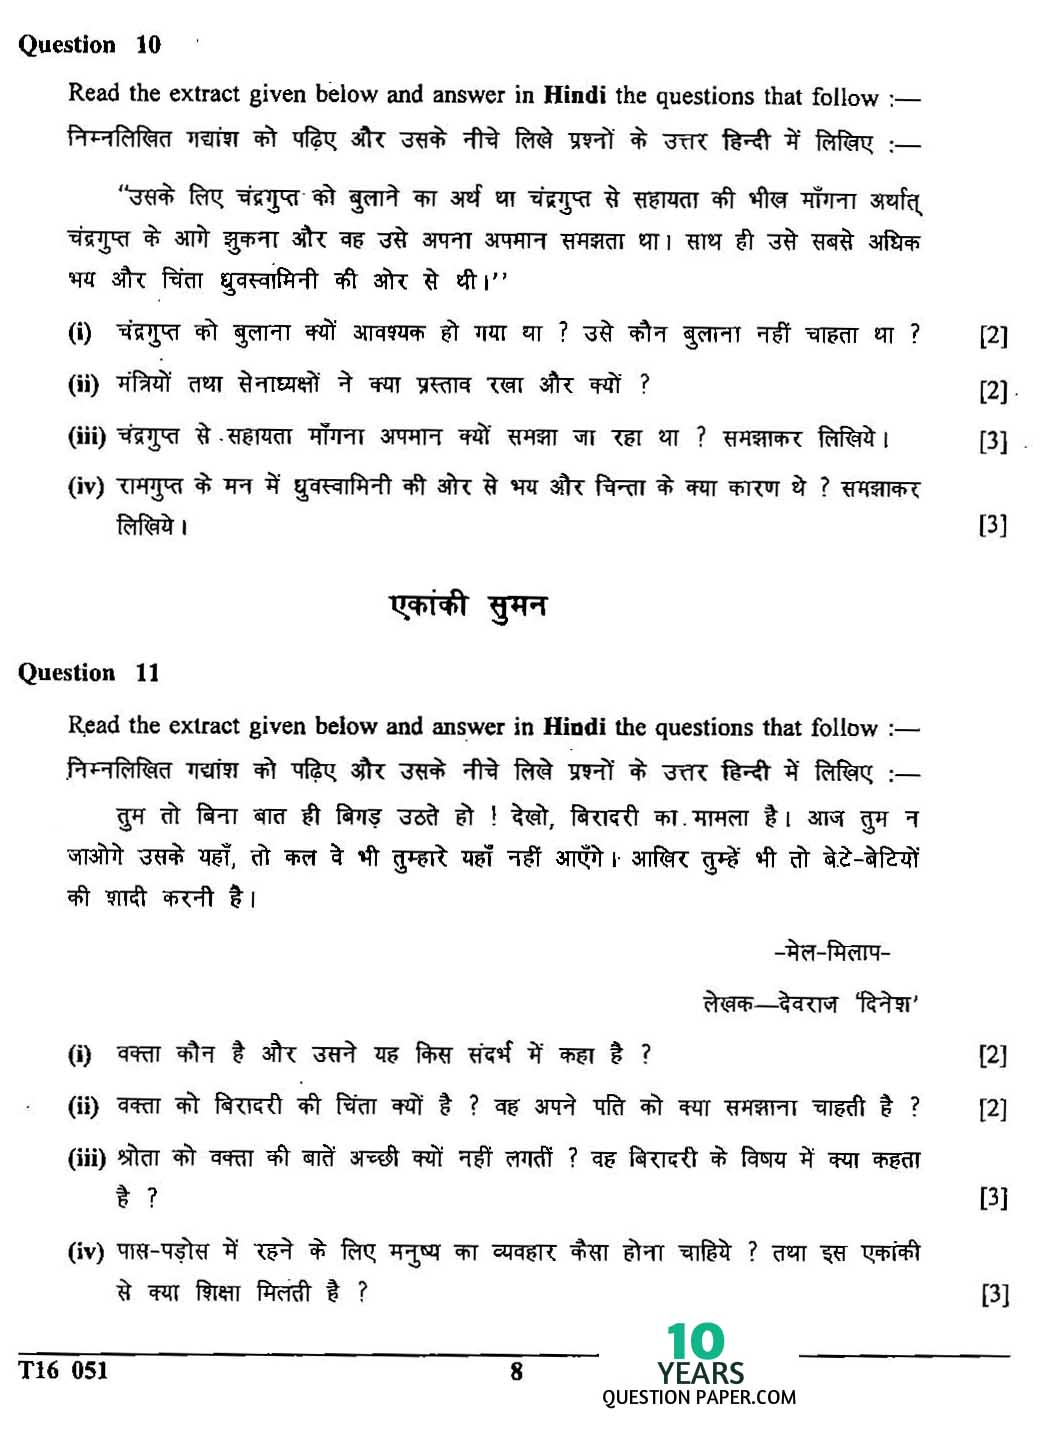 Worksheet Comprehension Passages For Grade 3 With Questions comprehension passage for grade 3 in hindi icse 2016 class x board question paper 10 years question